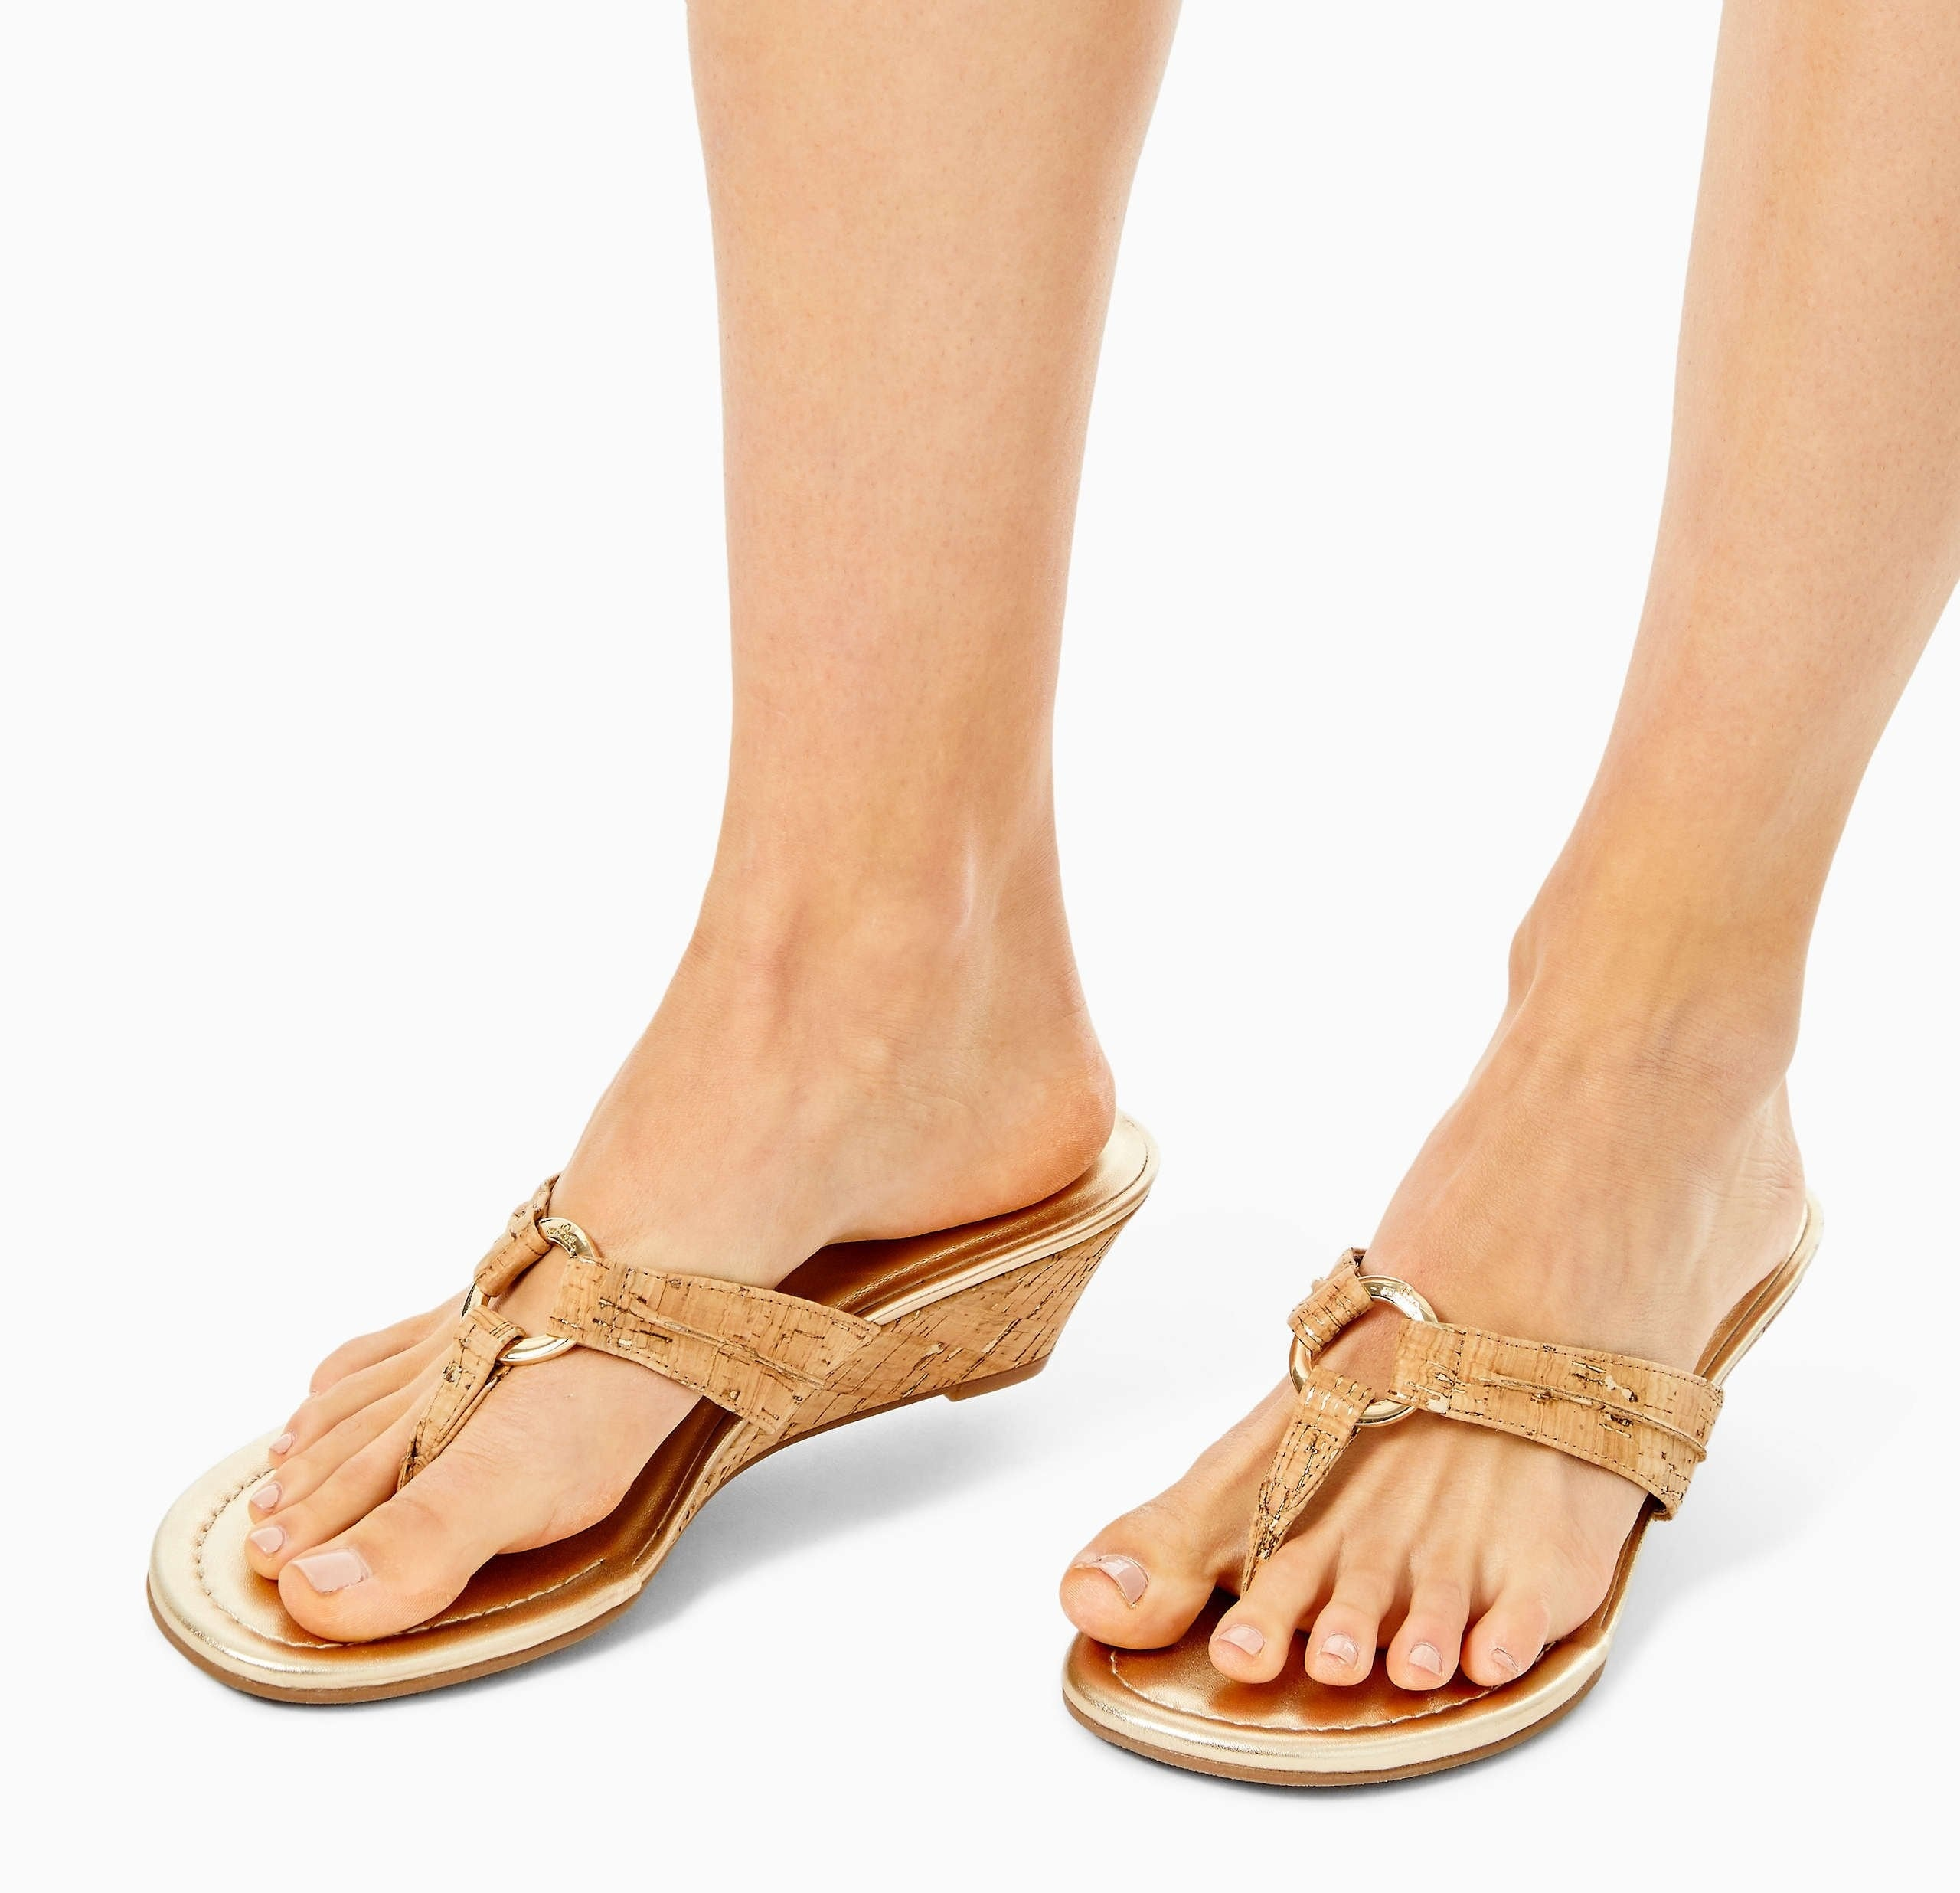 Sand colored wedges with round detail that attaches the straps